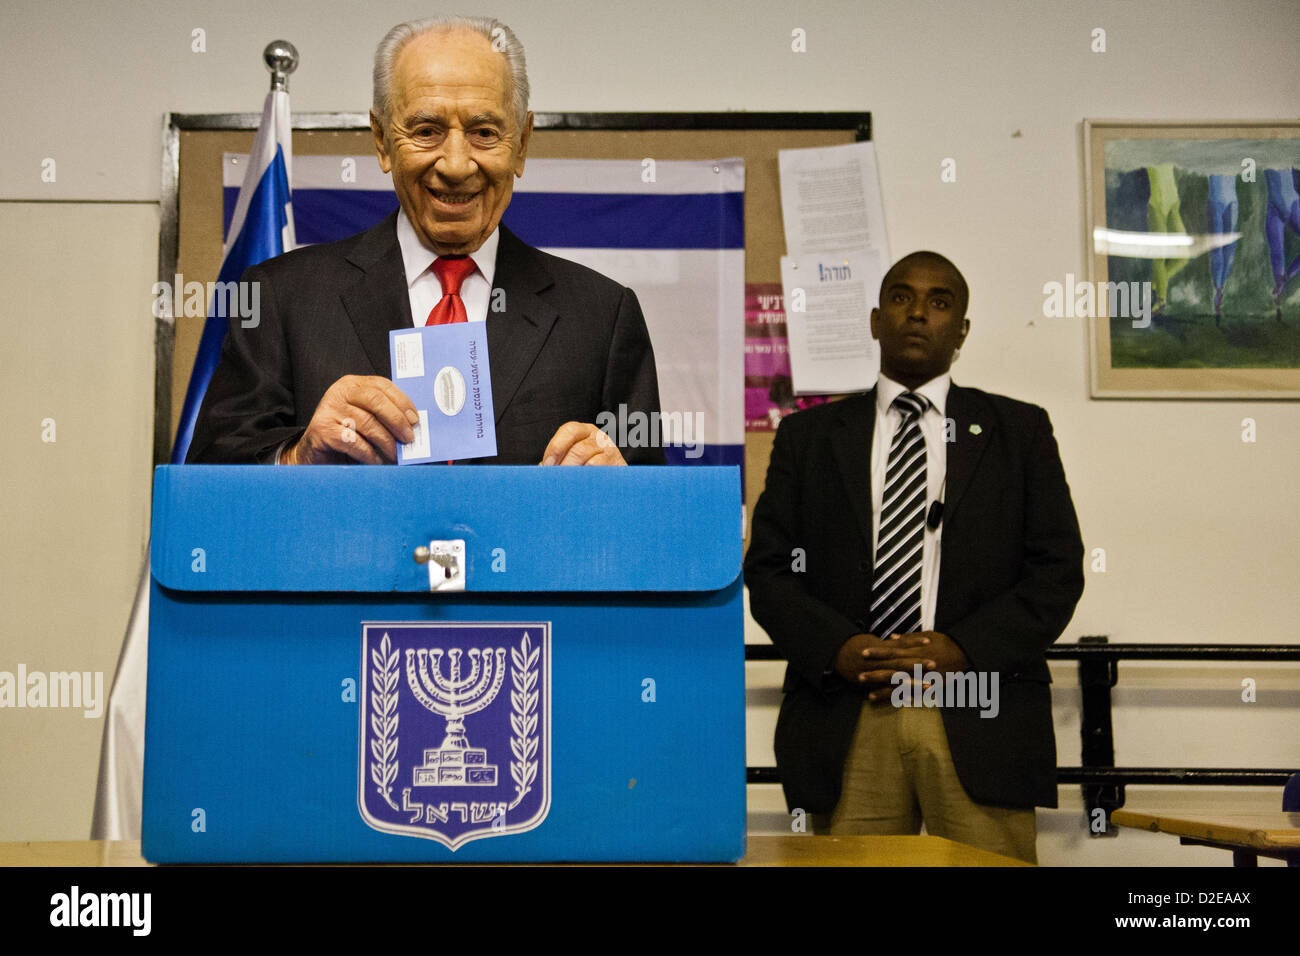 Divisive bill on hold as israel grapples with new coalition new